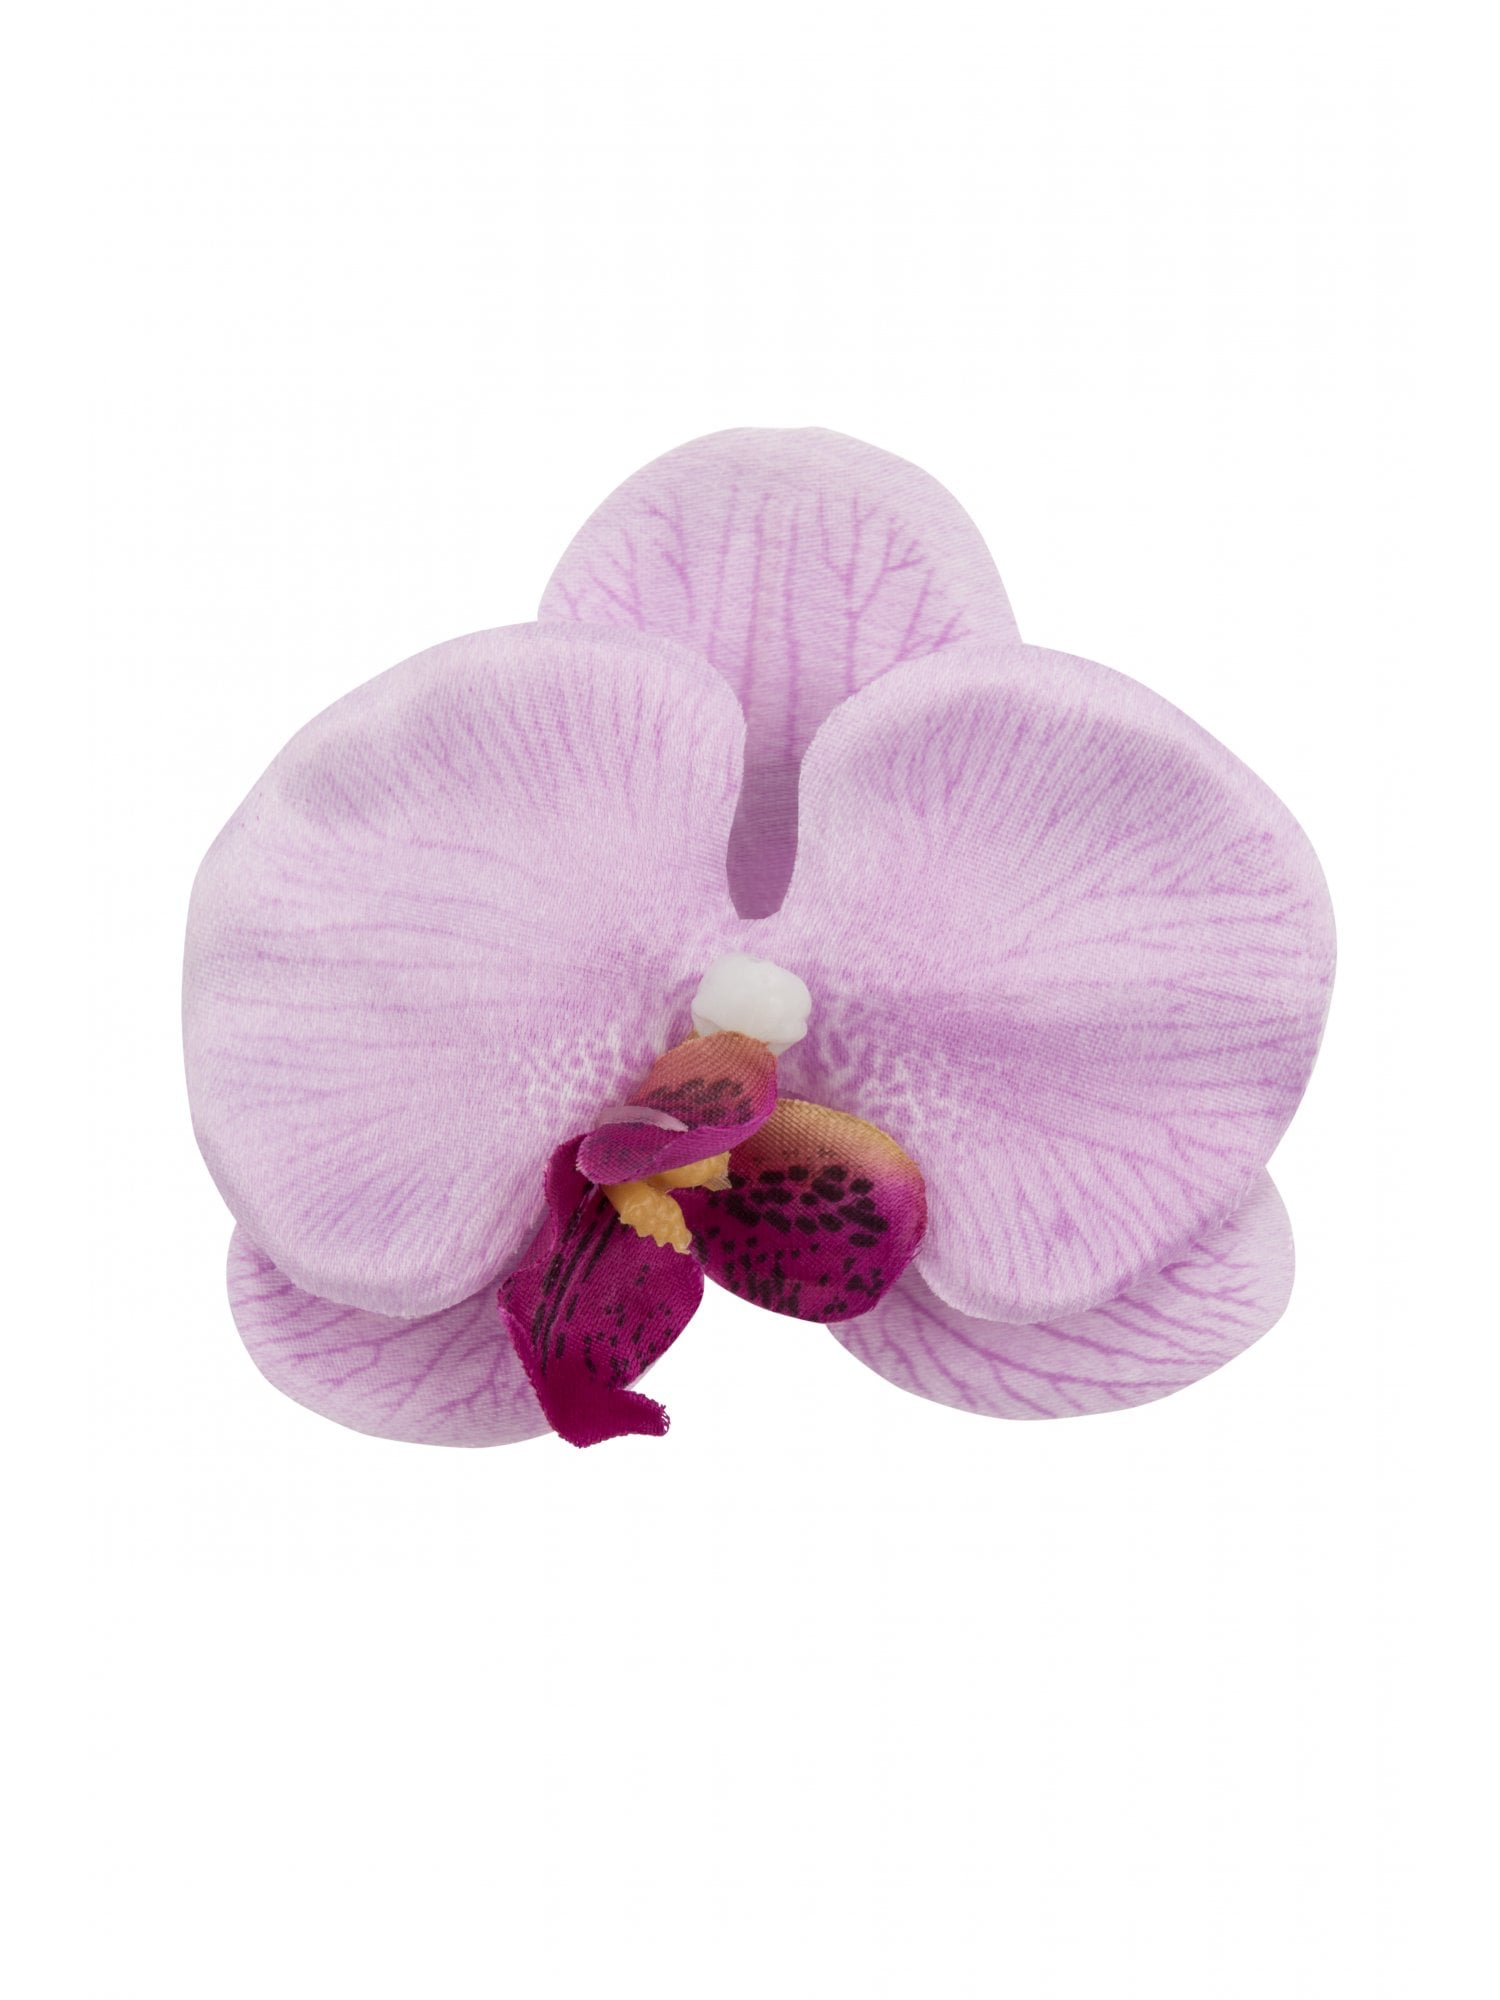 Cute Orchid Hair Flower - Purple - Bowler Vintage